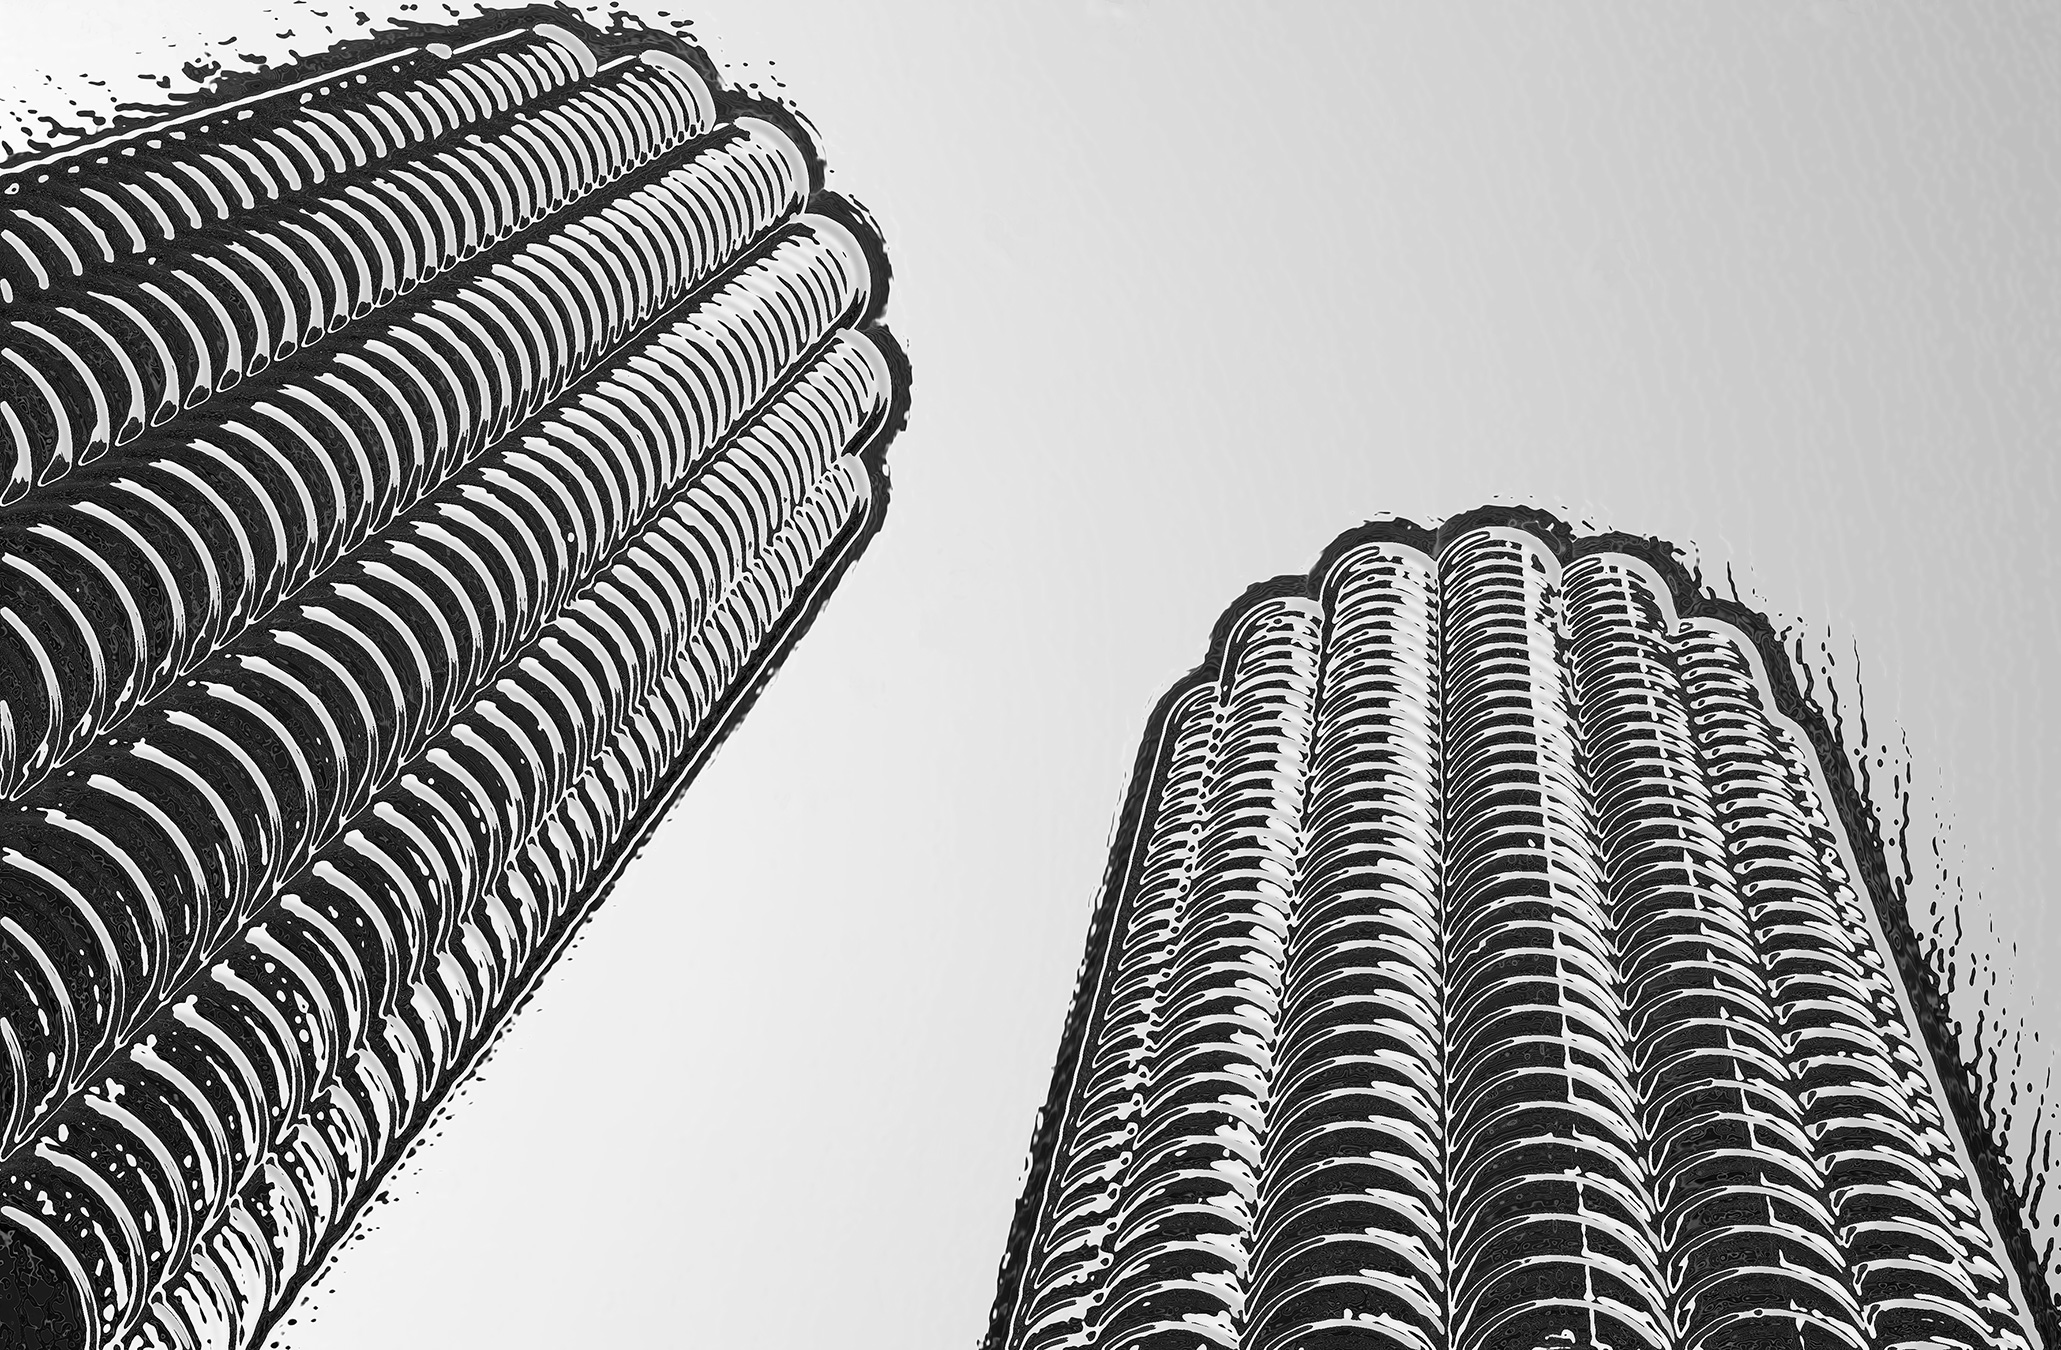 Two-Towers-II-Thumbnail